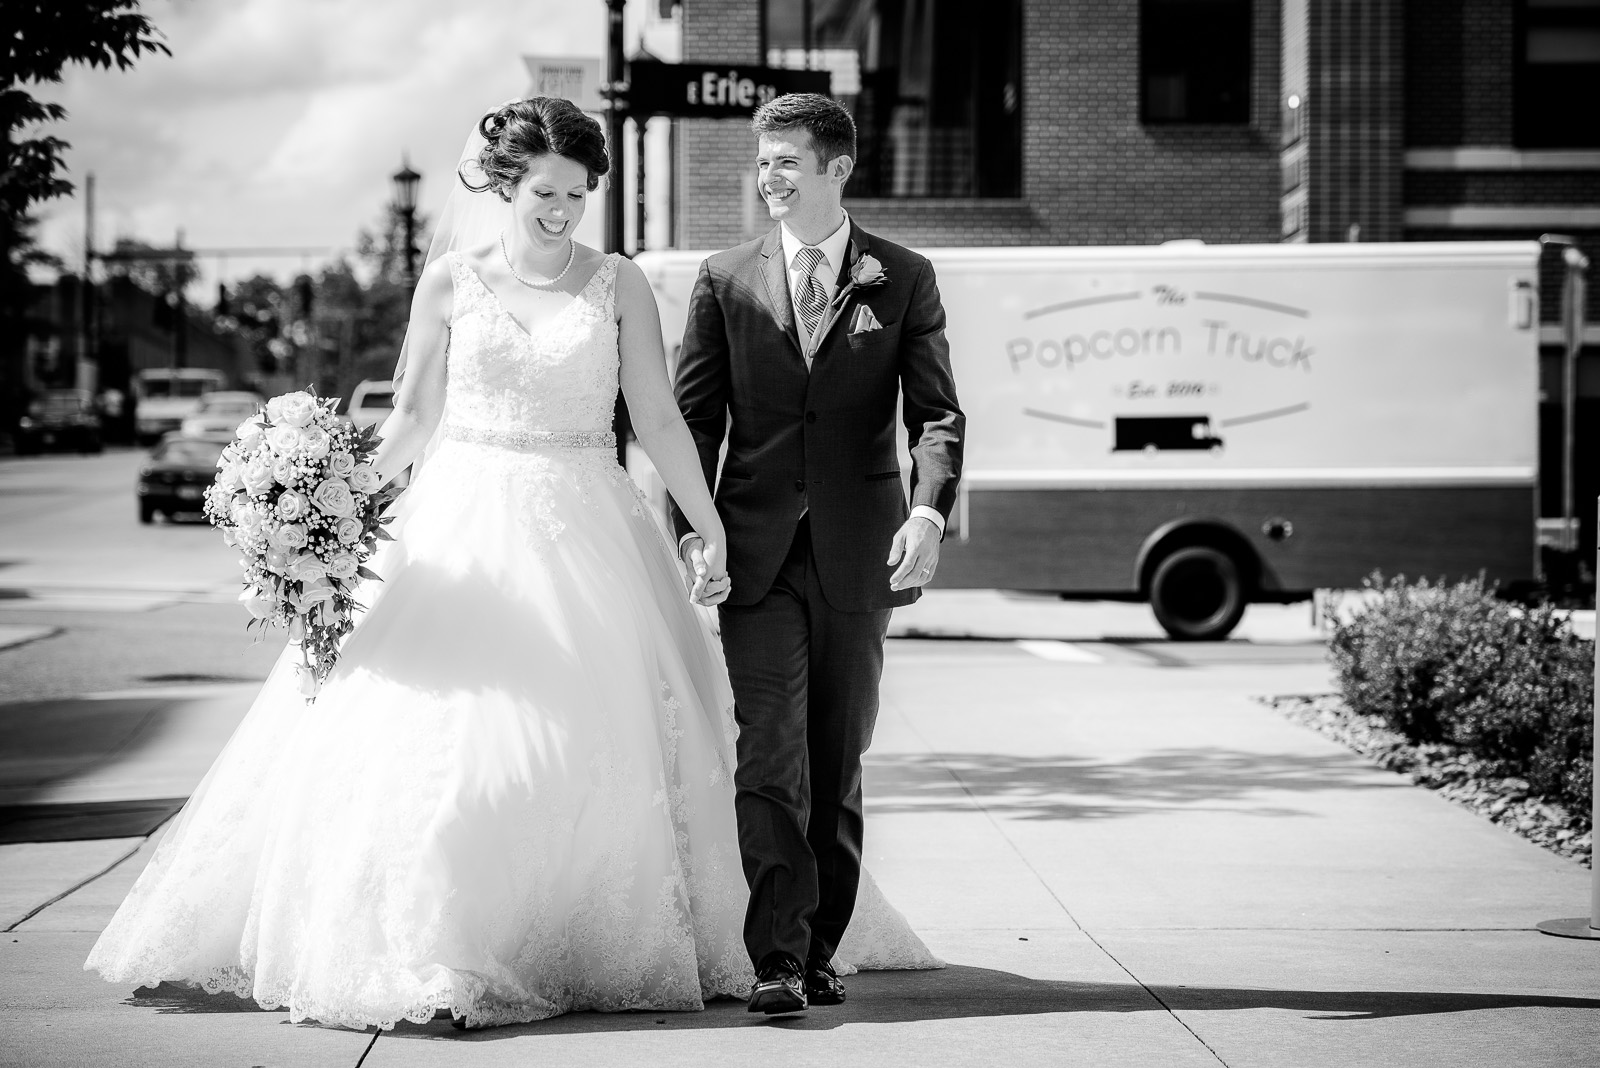 Eric_and_Christy_Photography_Blog_Wedding_Kelly_Michael-36